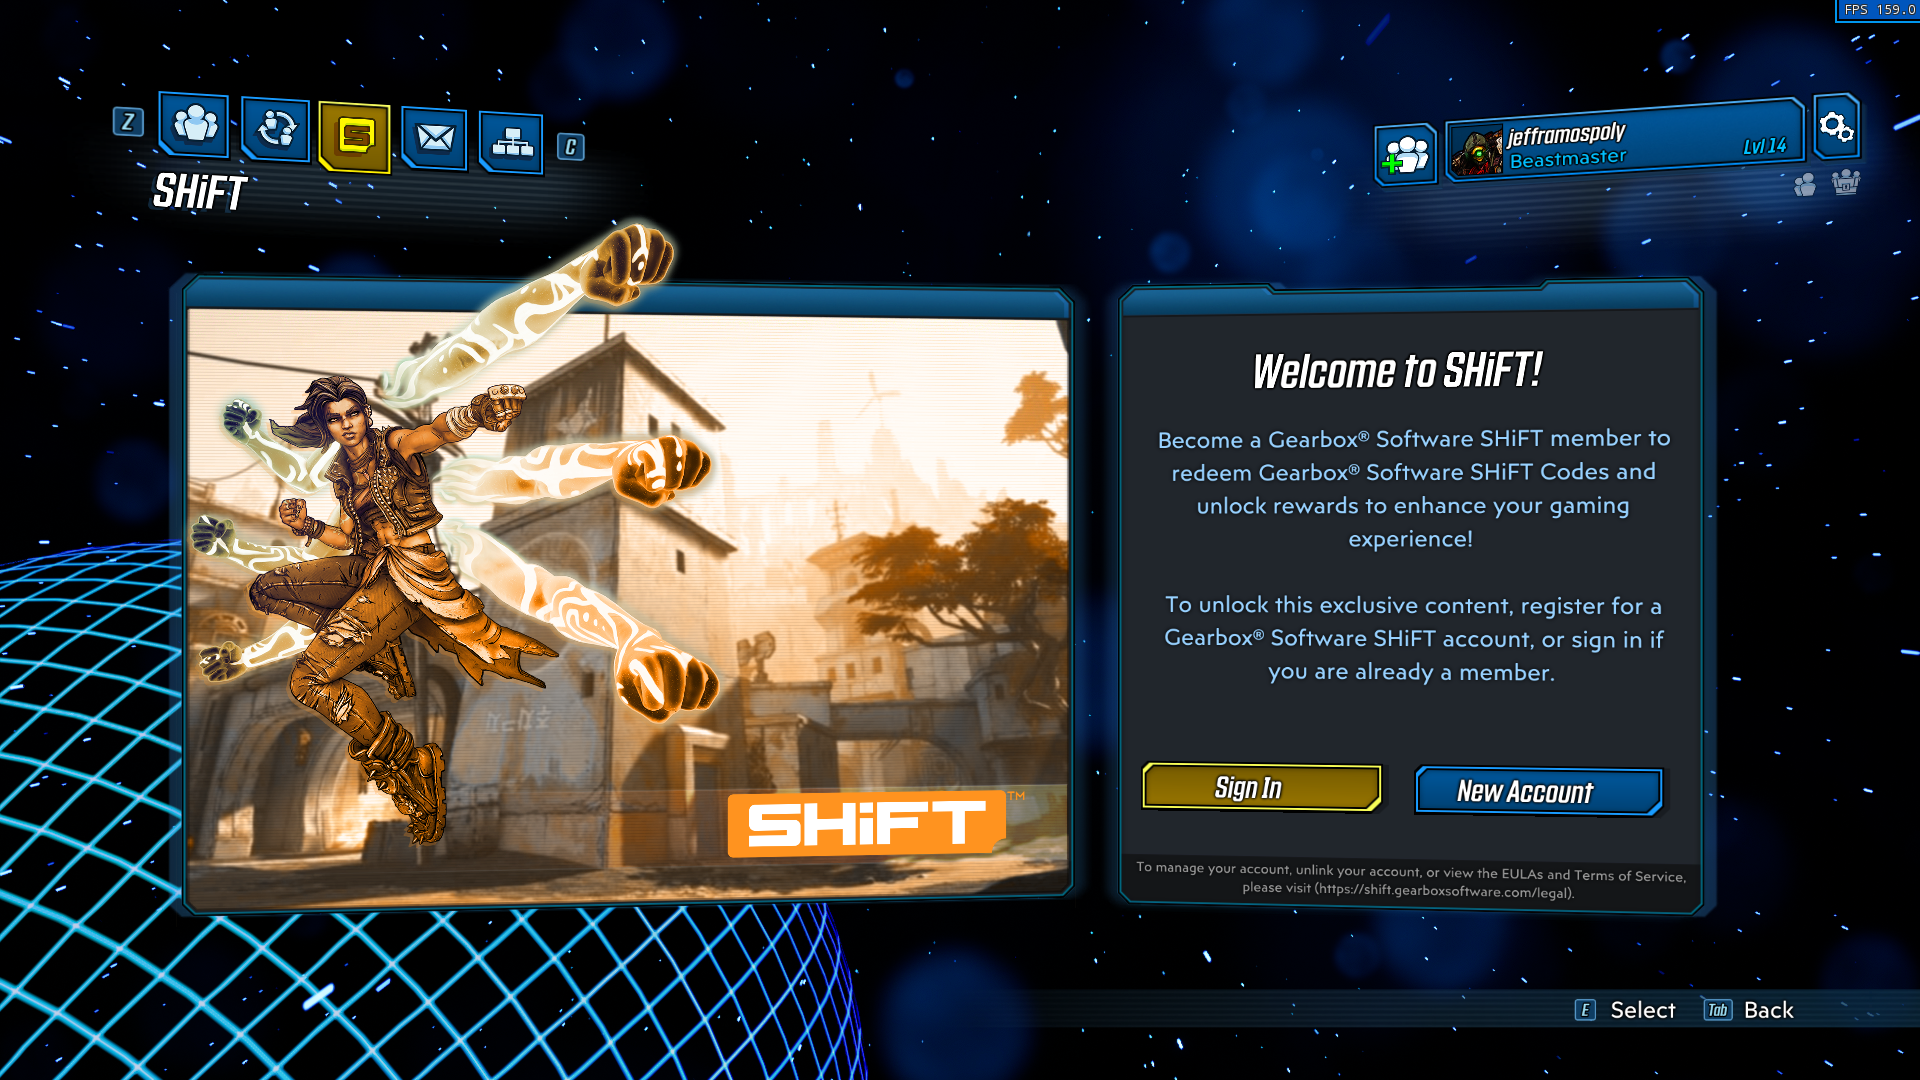 Gearbox's Shift member sign up screen in Borderlands 3